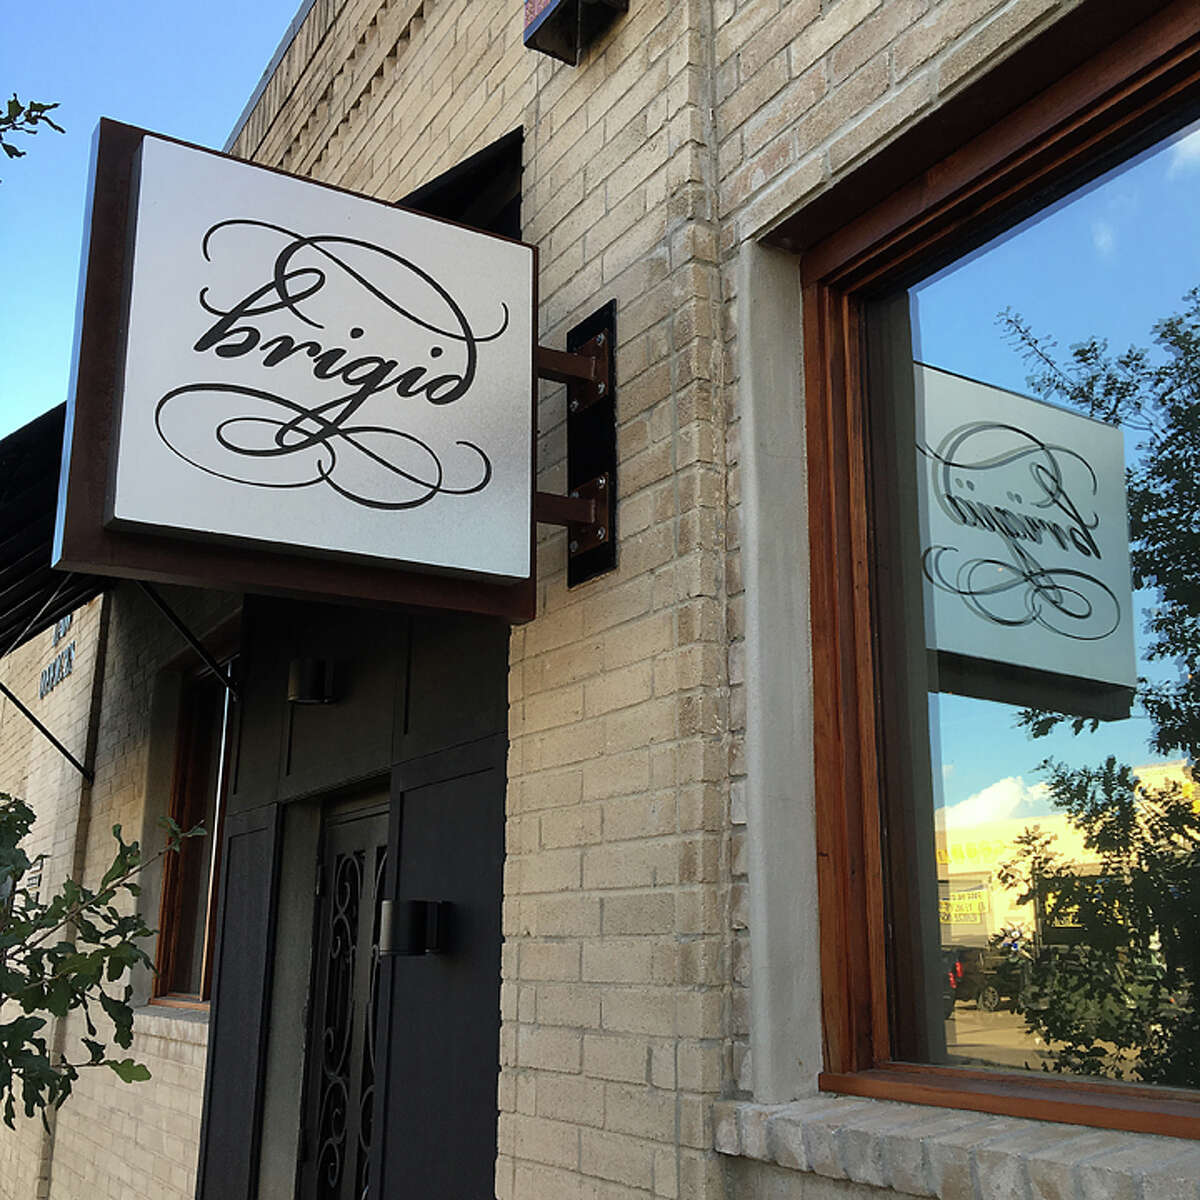 Brigid opened in 2015 at803 S. St. Mary's St.